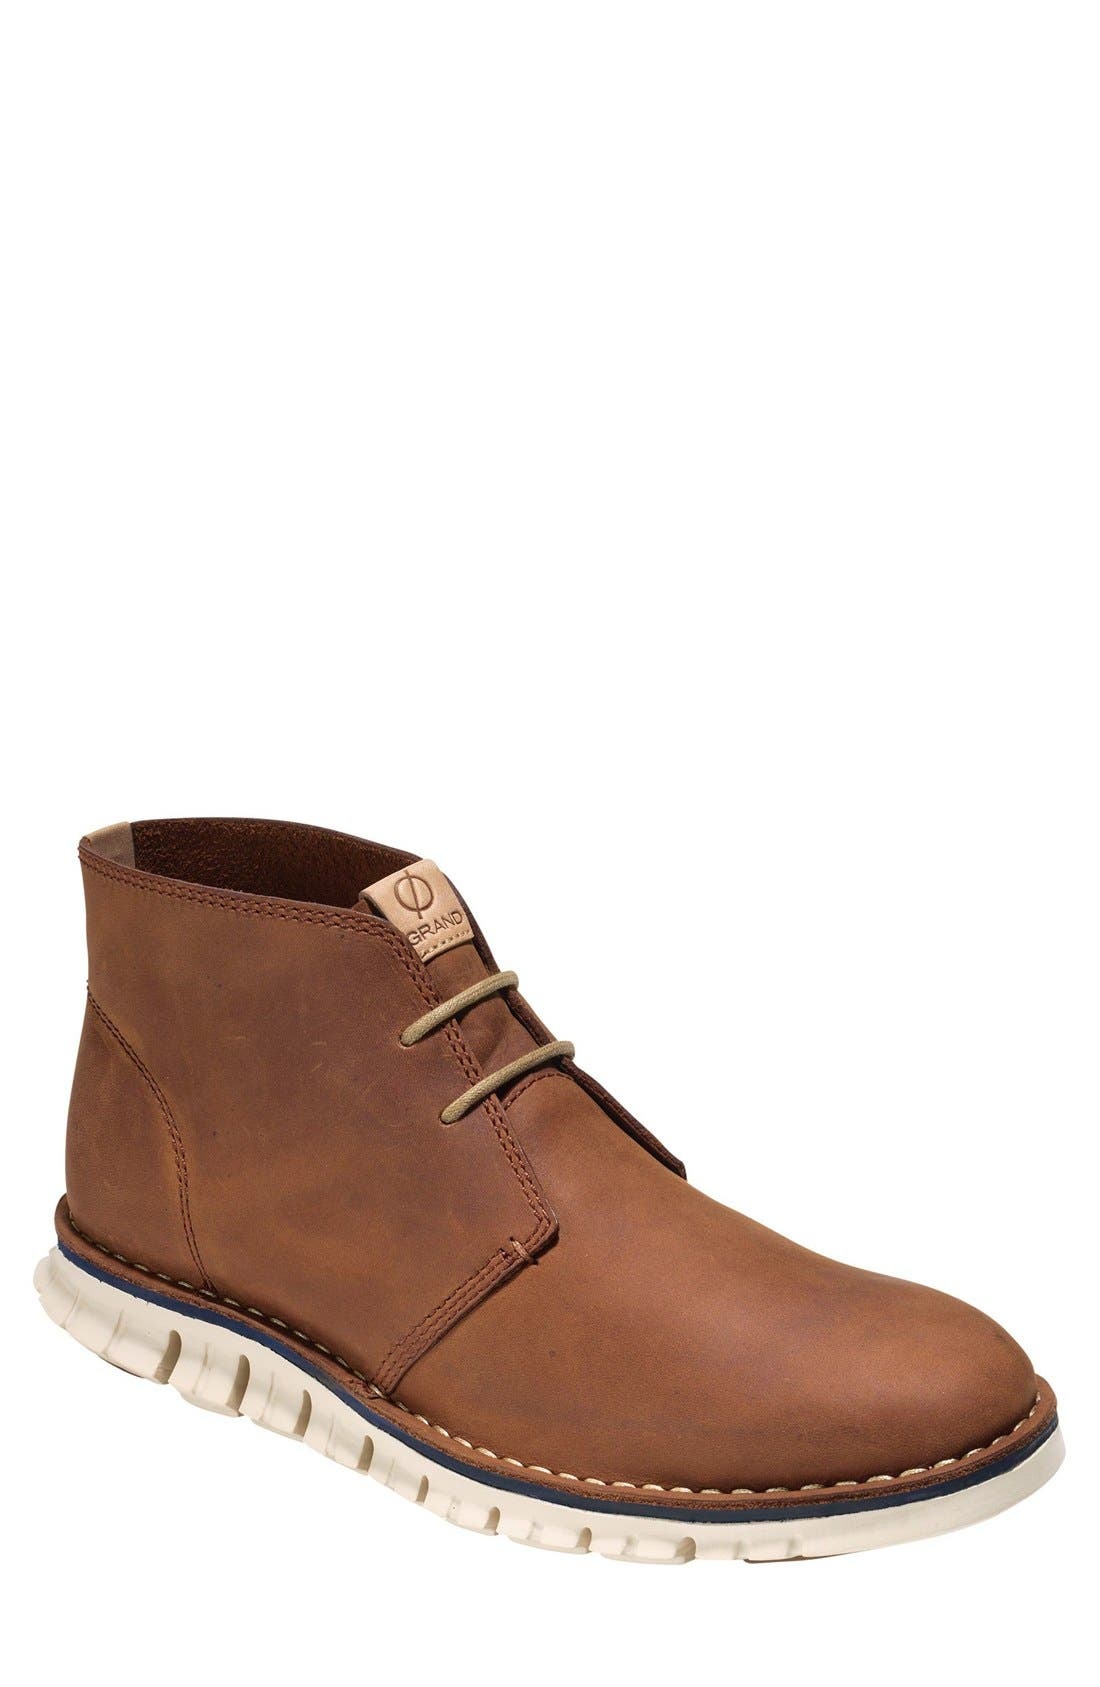 Main Image - Cole Haan 'ZeroGrand' Chukka Boot (Men)